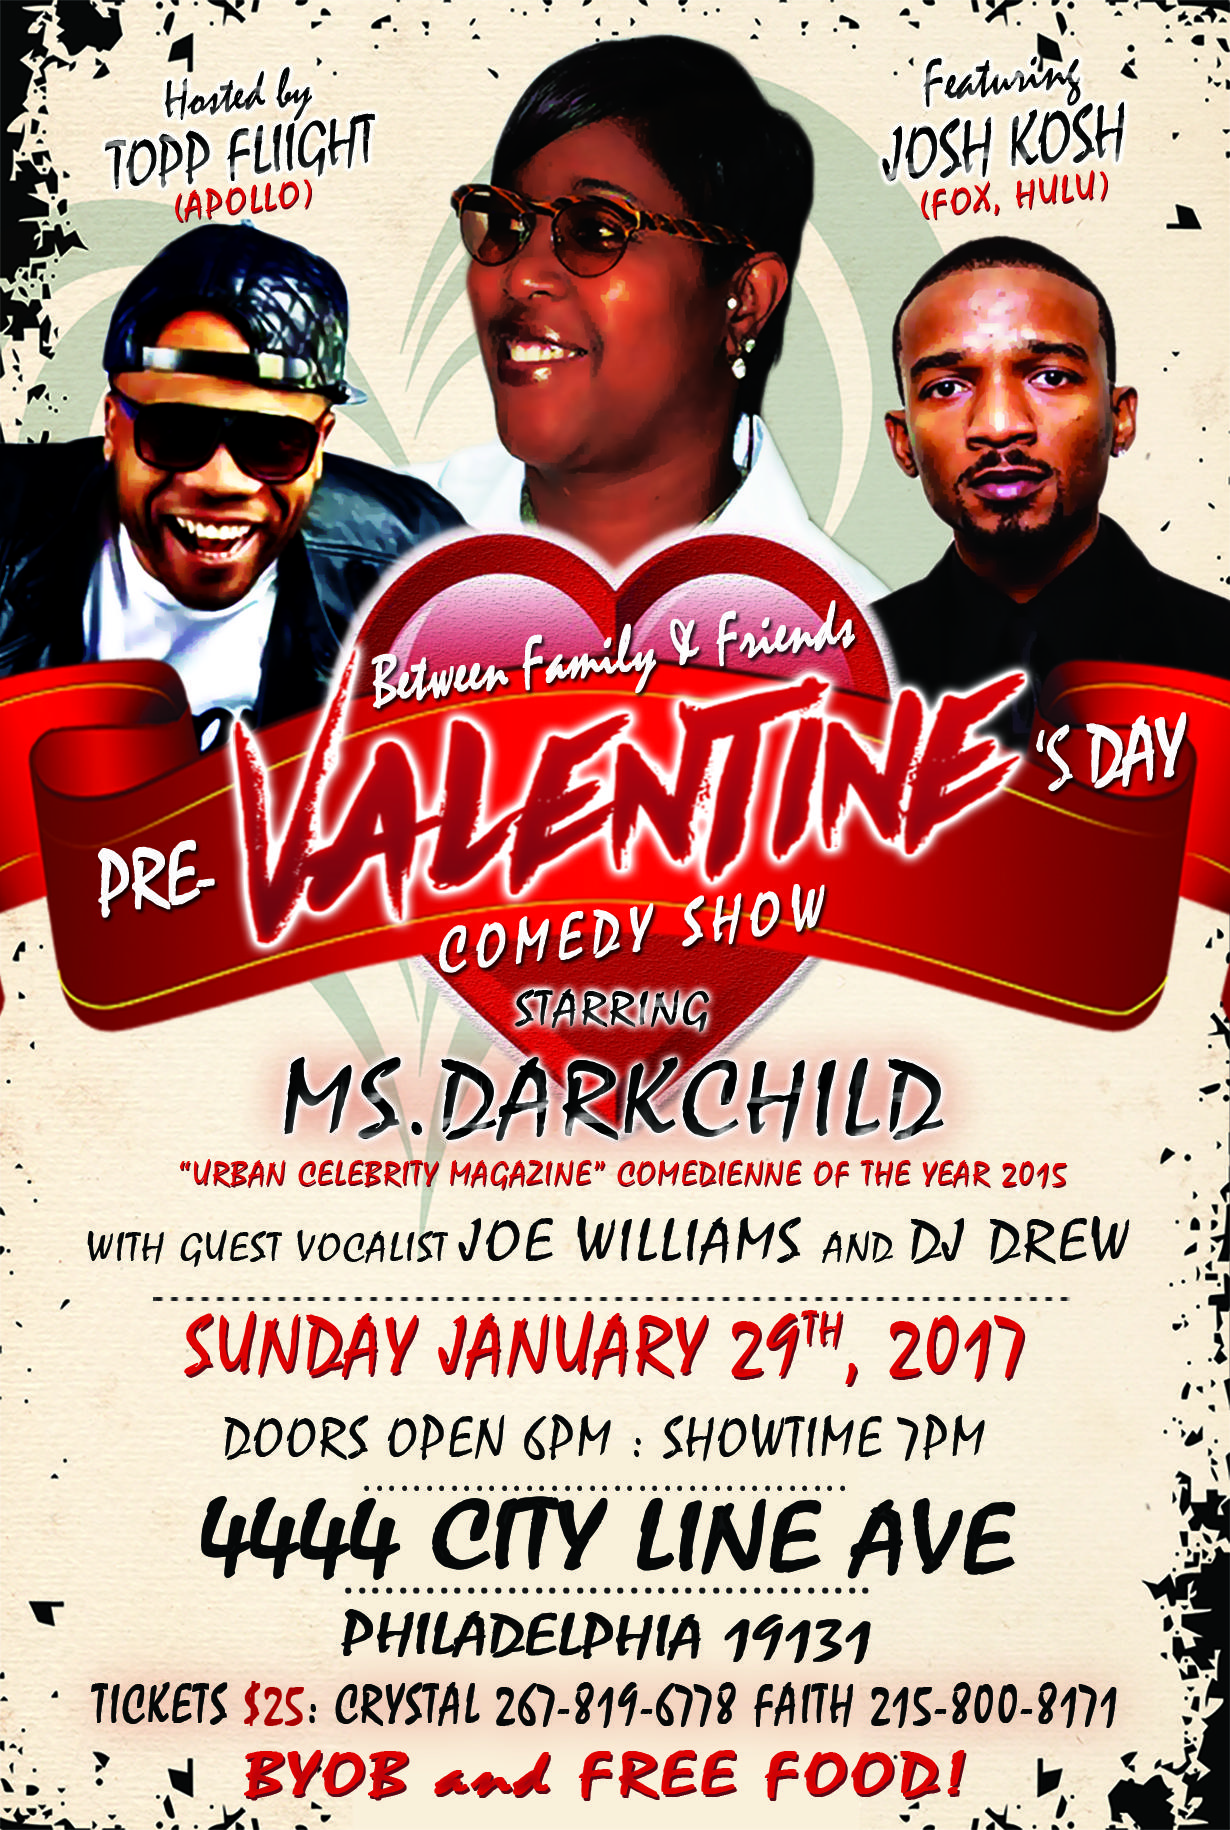 Pre-Valentines Day Comedy Show! starring Ms.D